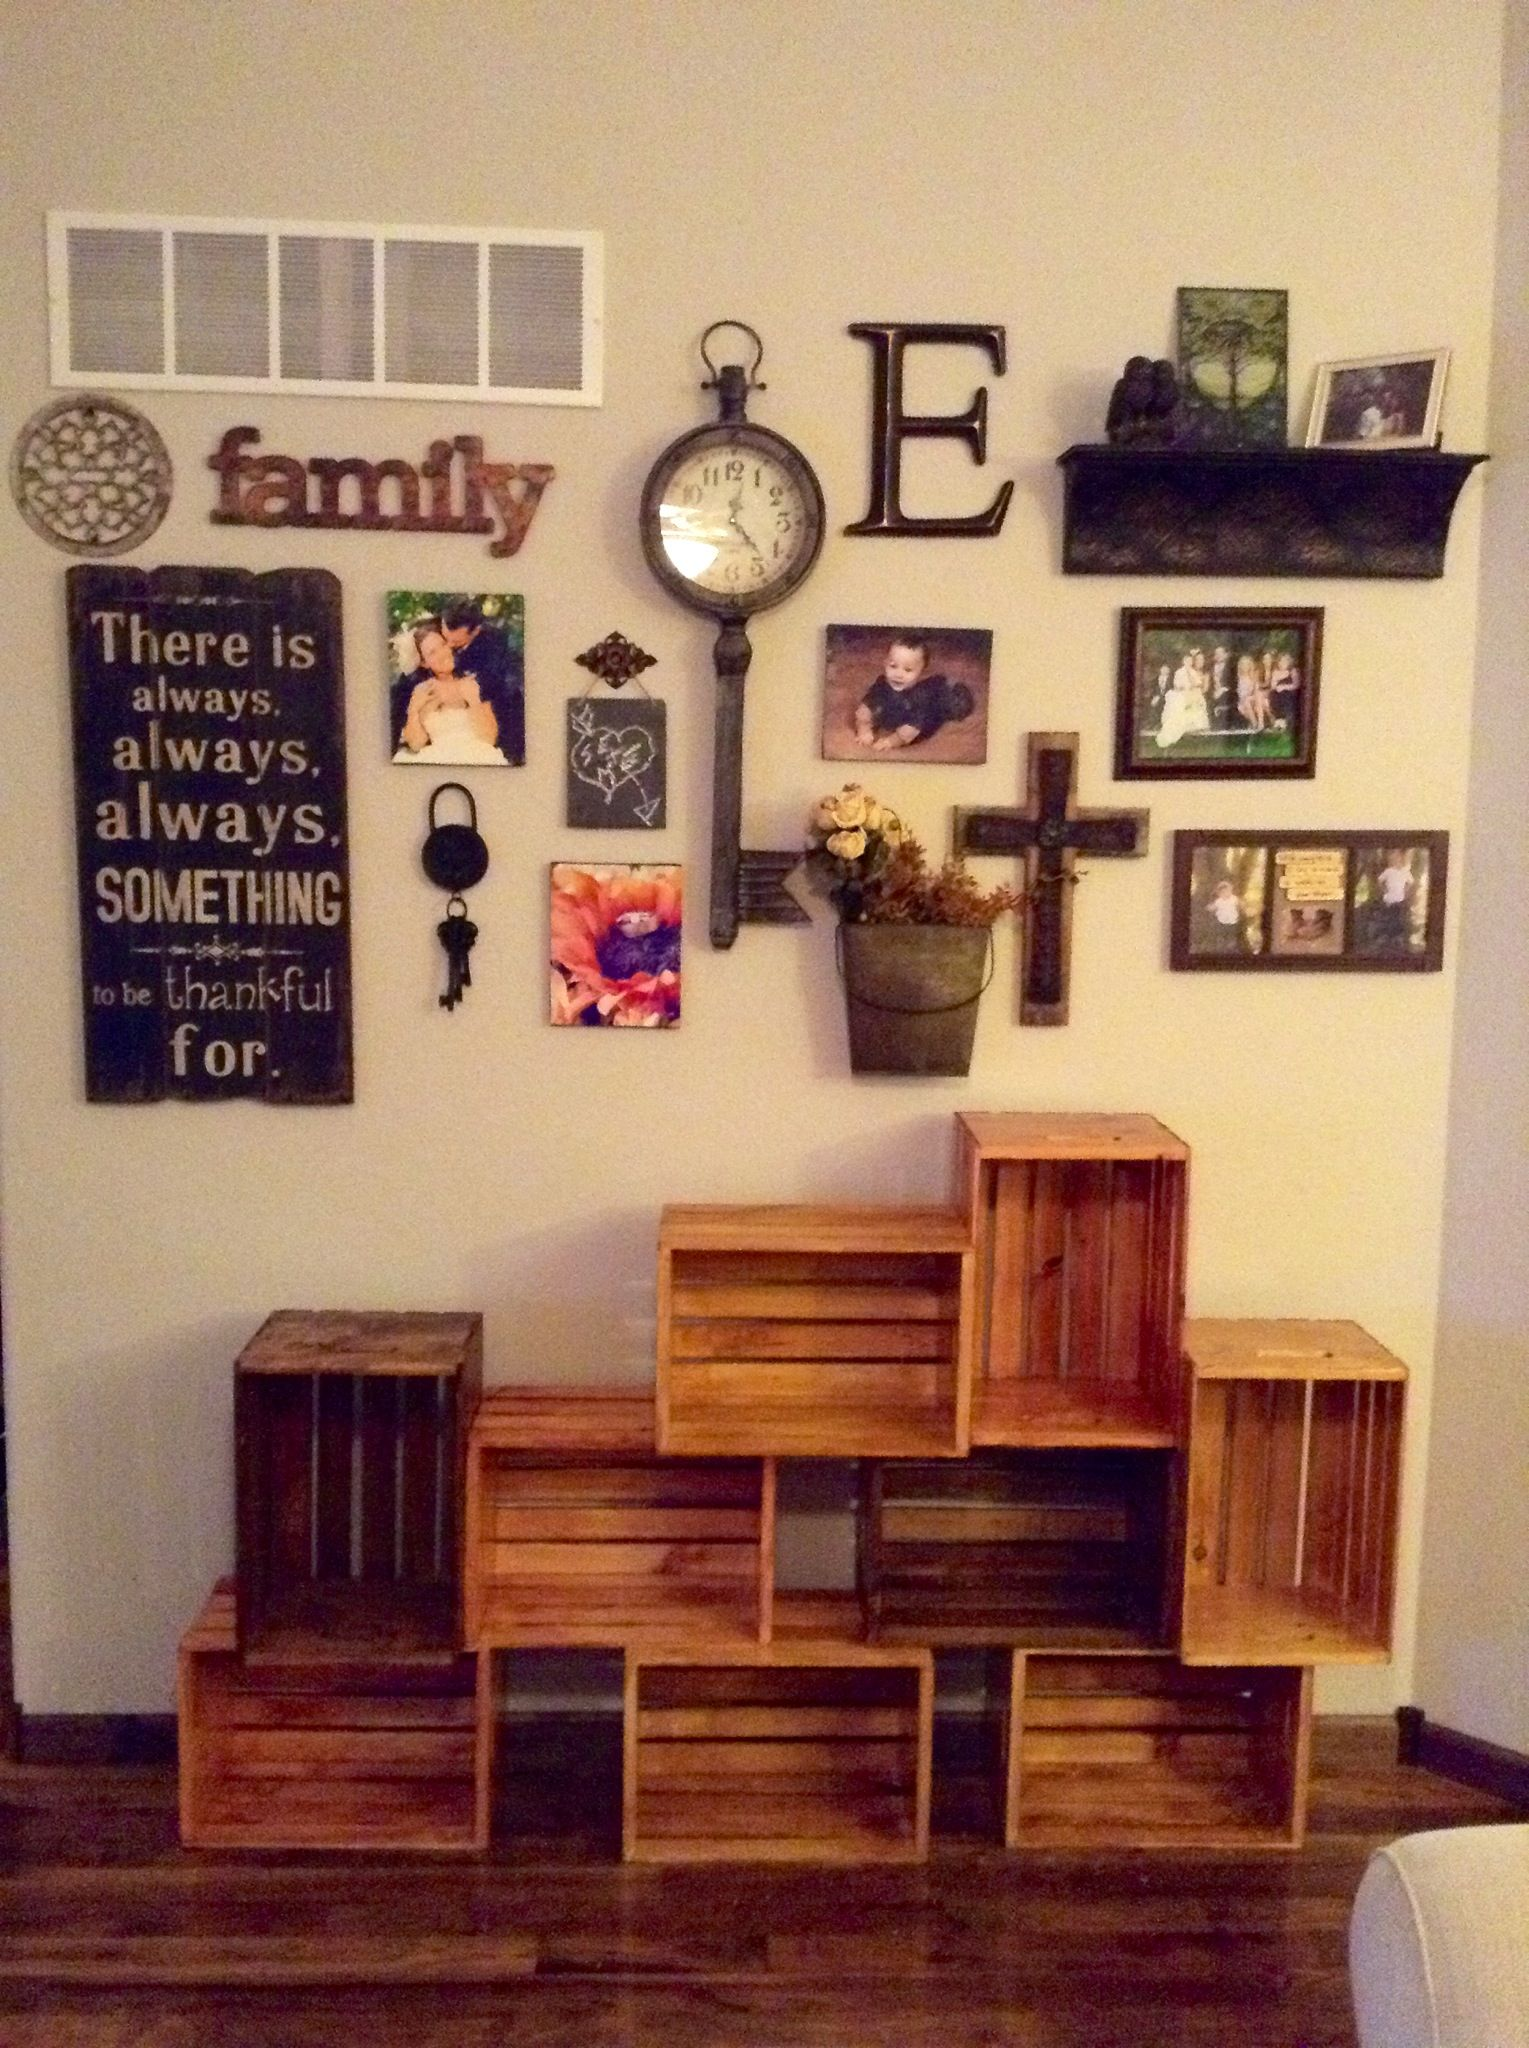 Pin By Kim Peisel Bauer On Living Room Already Done Diy Living Room Decor Pinterest Home Decor Ideas Wall Decor Living Room